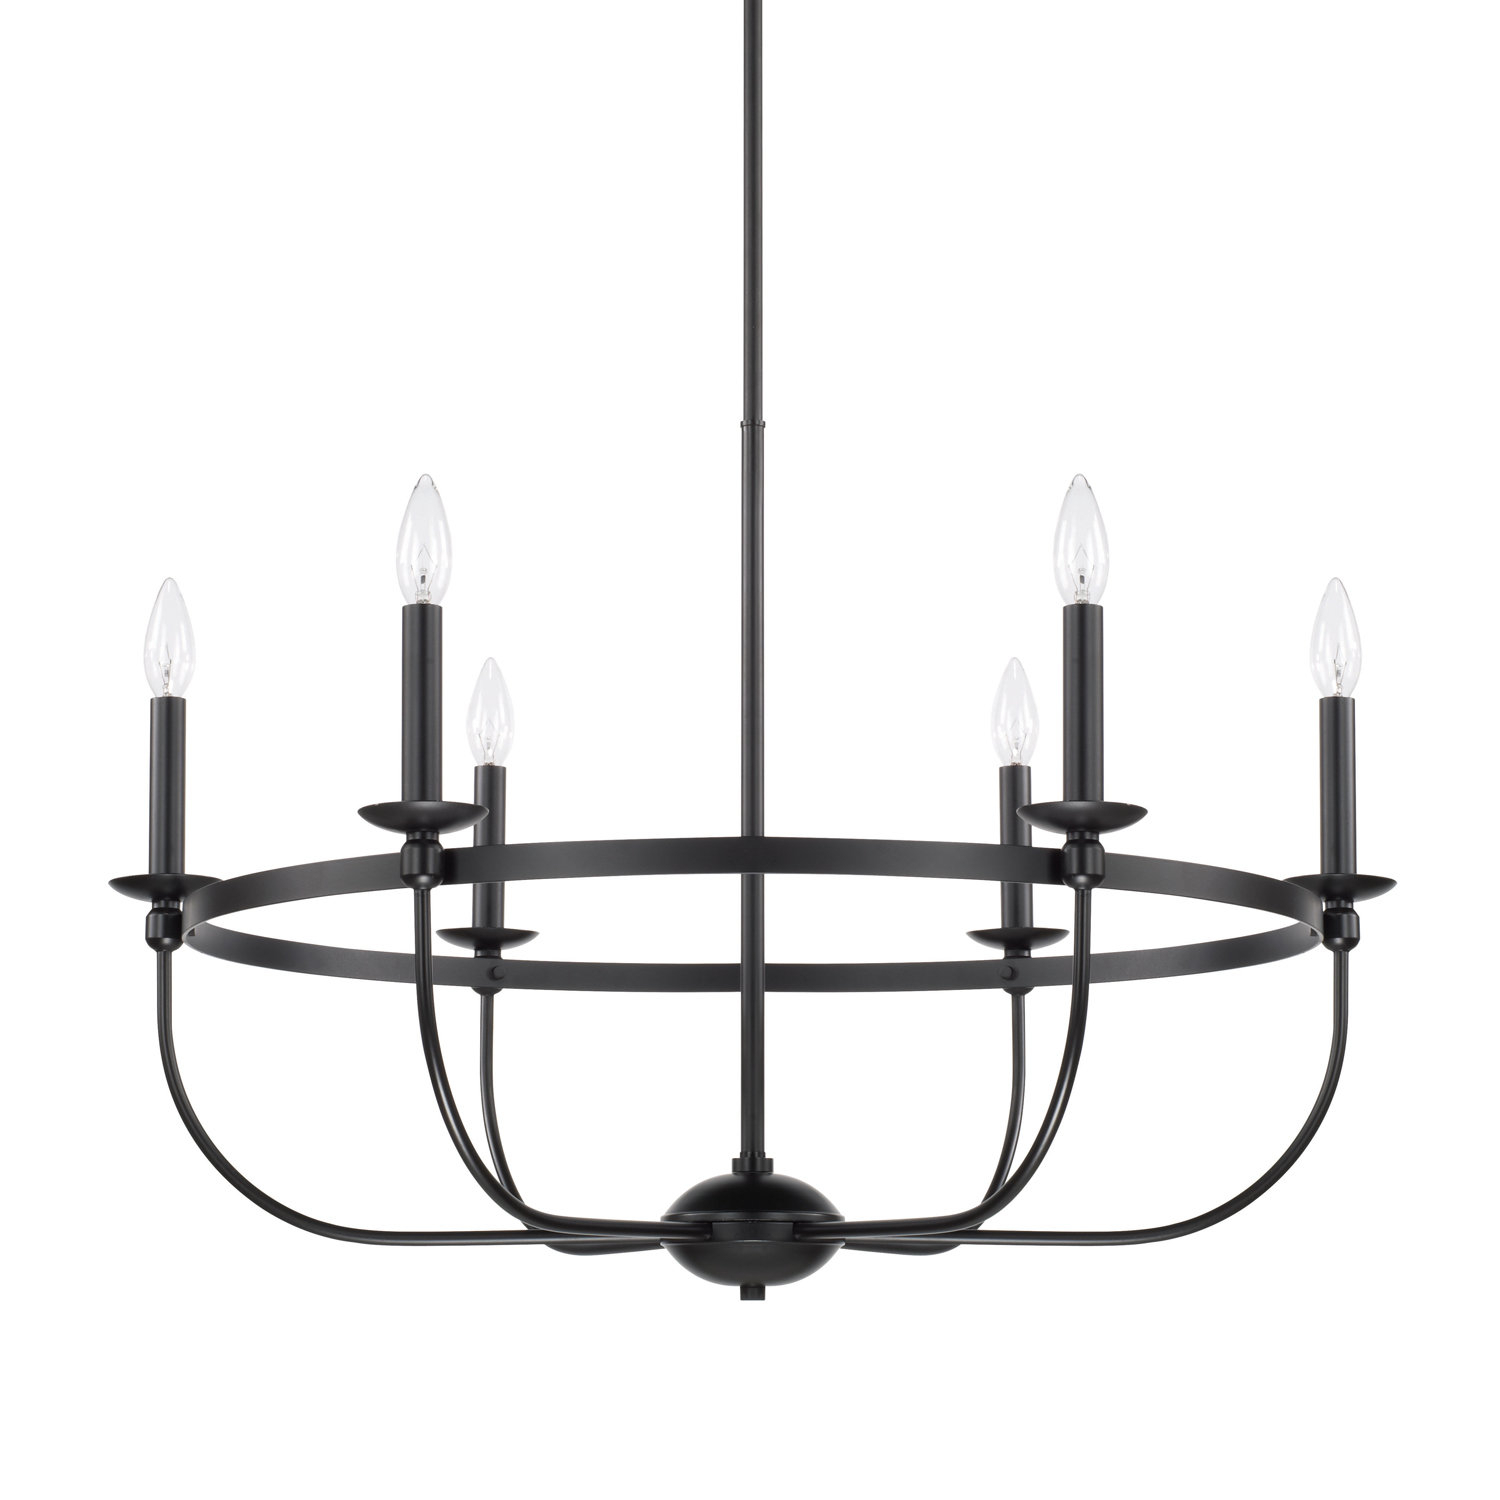 Gracie Oaks Claughaun 6 Light Candle Style Chandelier Throughout Bennington 6 Light Candle Style Chandeliers (View 16 of 30)